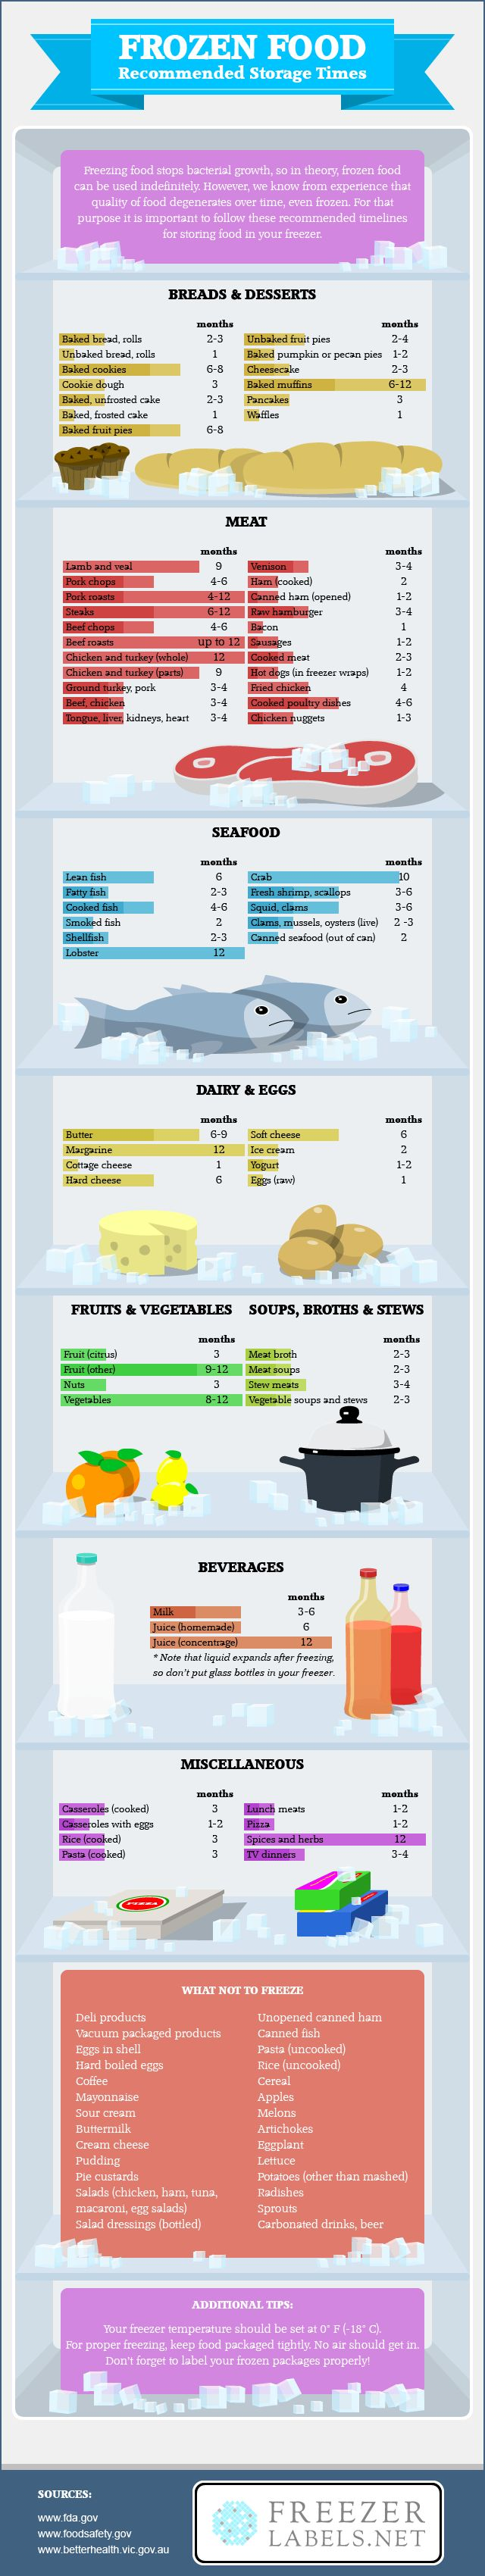 Frozen Food - Recommended Storage Times | How Long You Can Actually Store Foods in Your Freezer